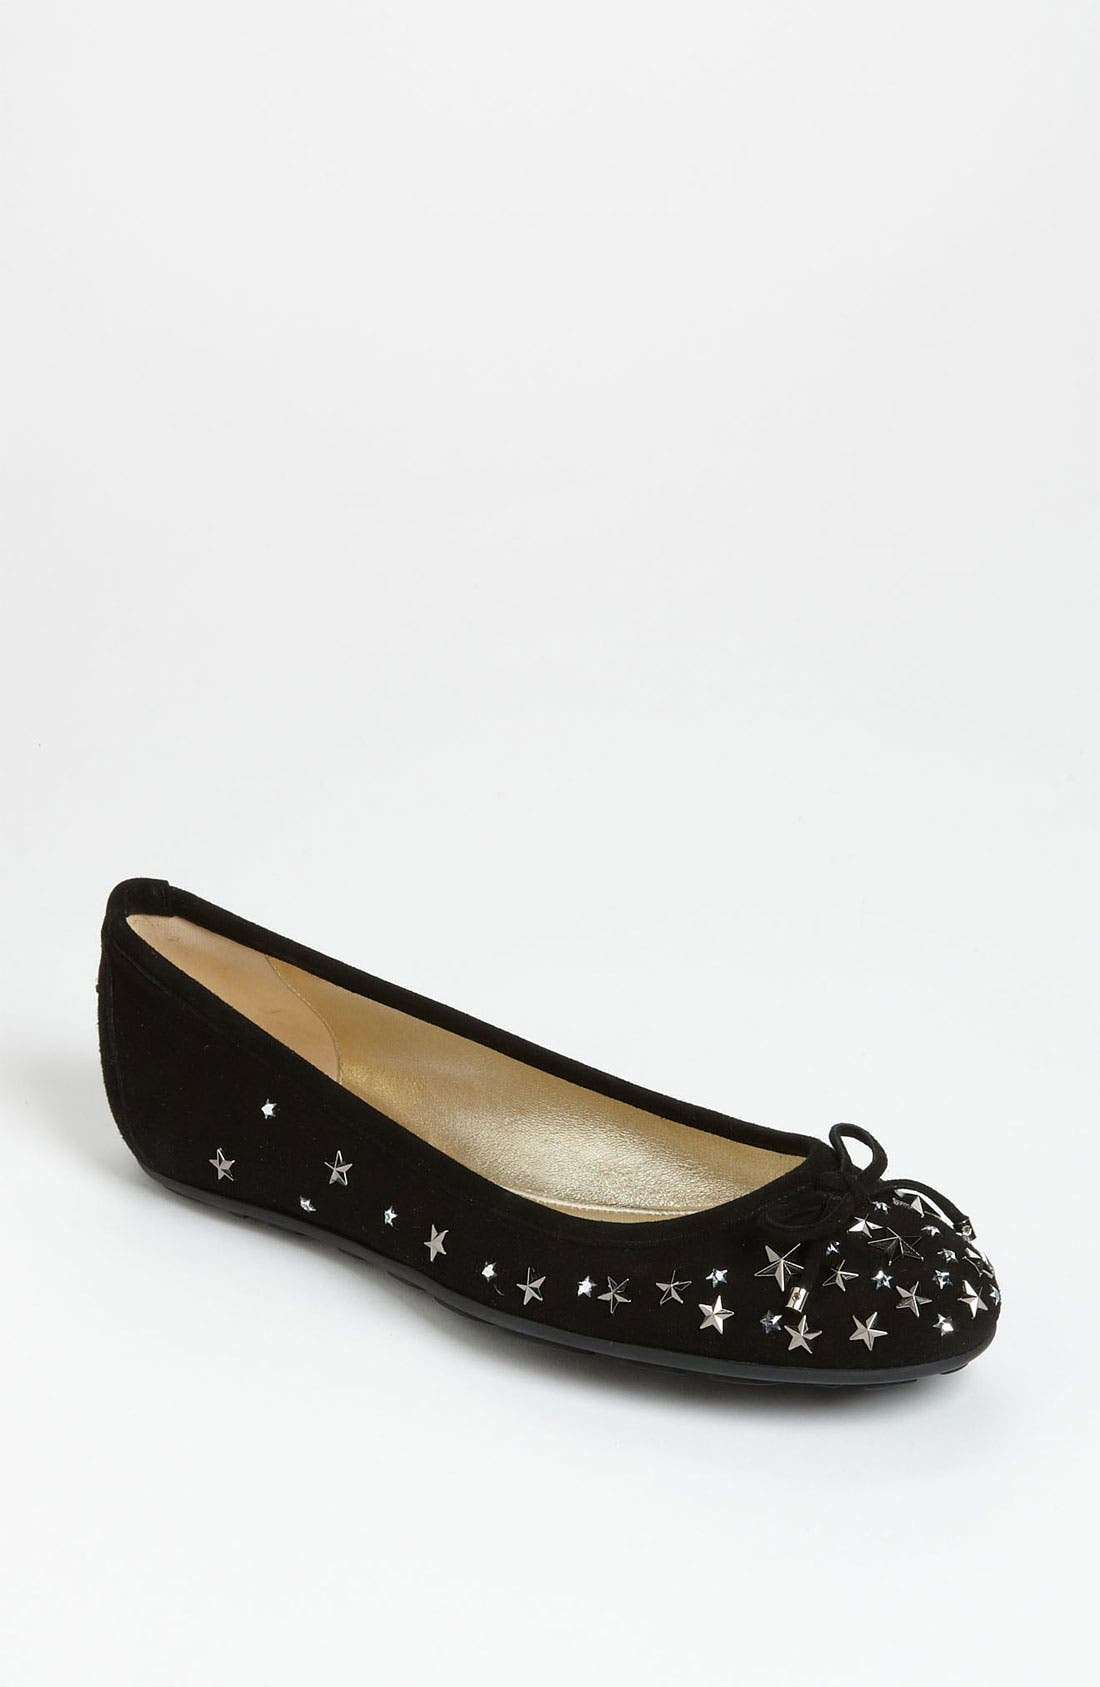 Main Image - Jimmy Choo 'Willow' Ballerina Flat